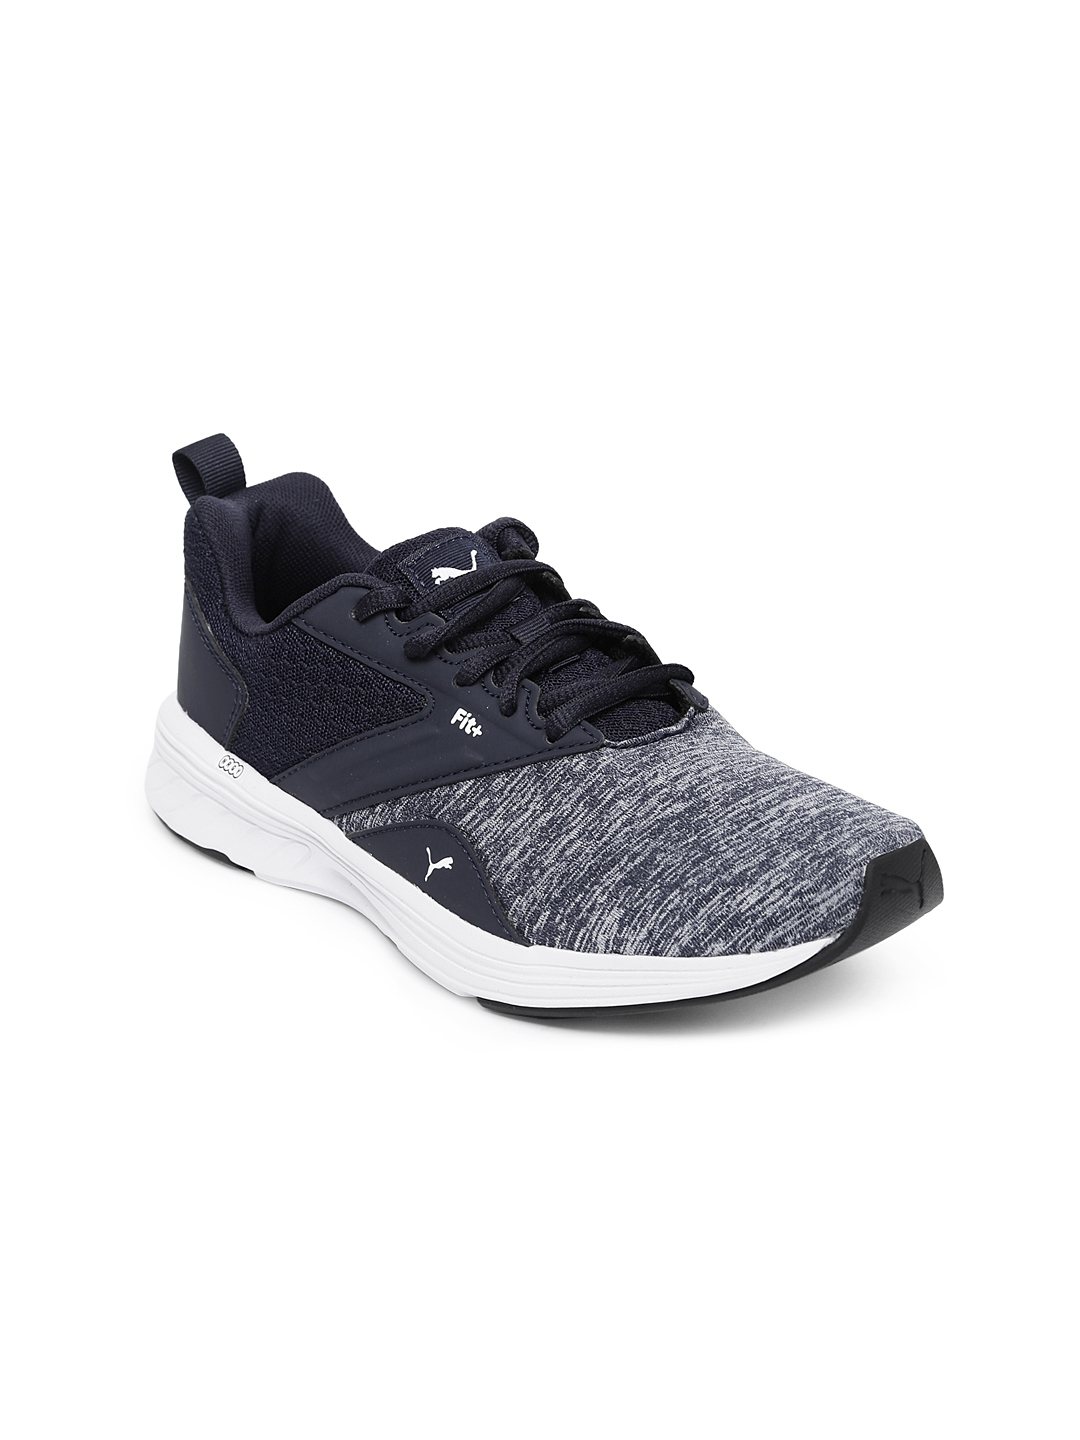 0754d597f51bfd Buy Puma Kids Navy Blue NRGY Comet Junior Sneakers - Casual Shoes ...